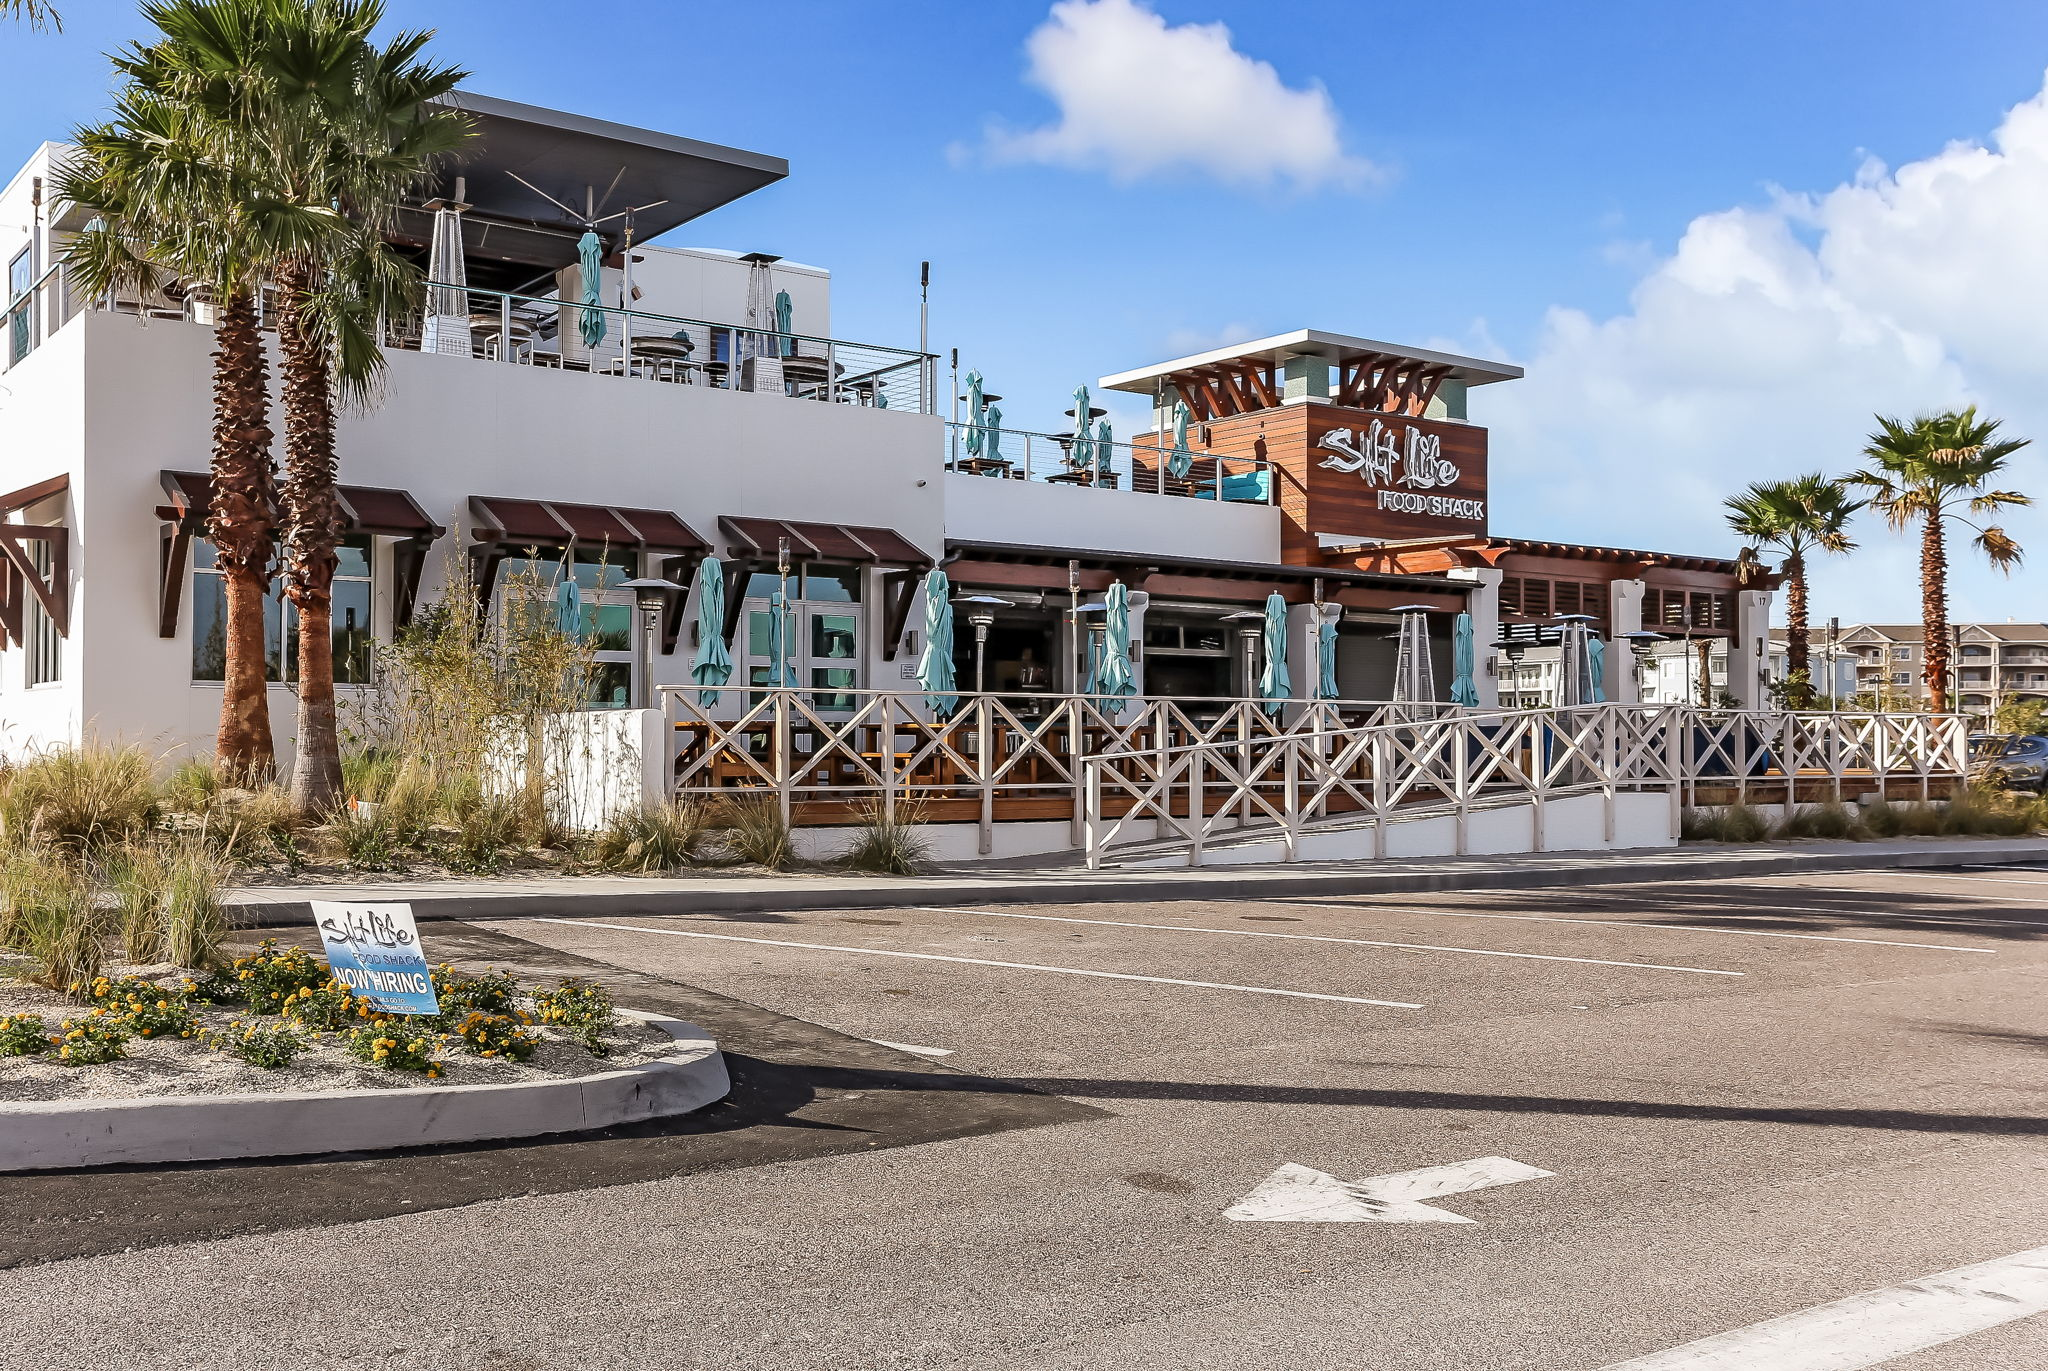 Open air beach front dining and entertainment is close by